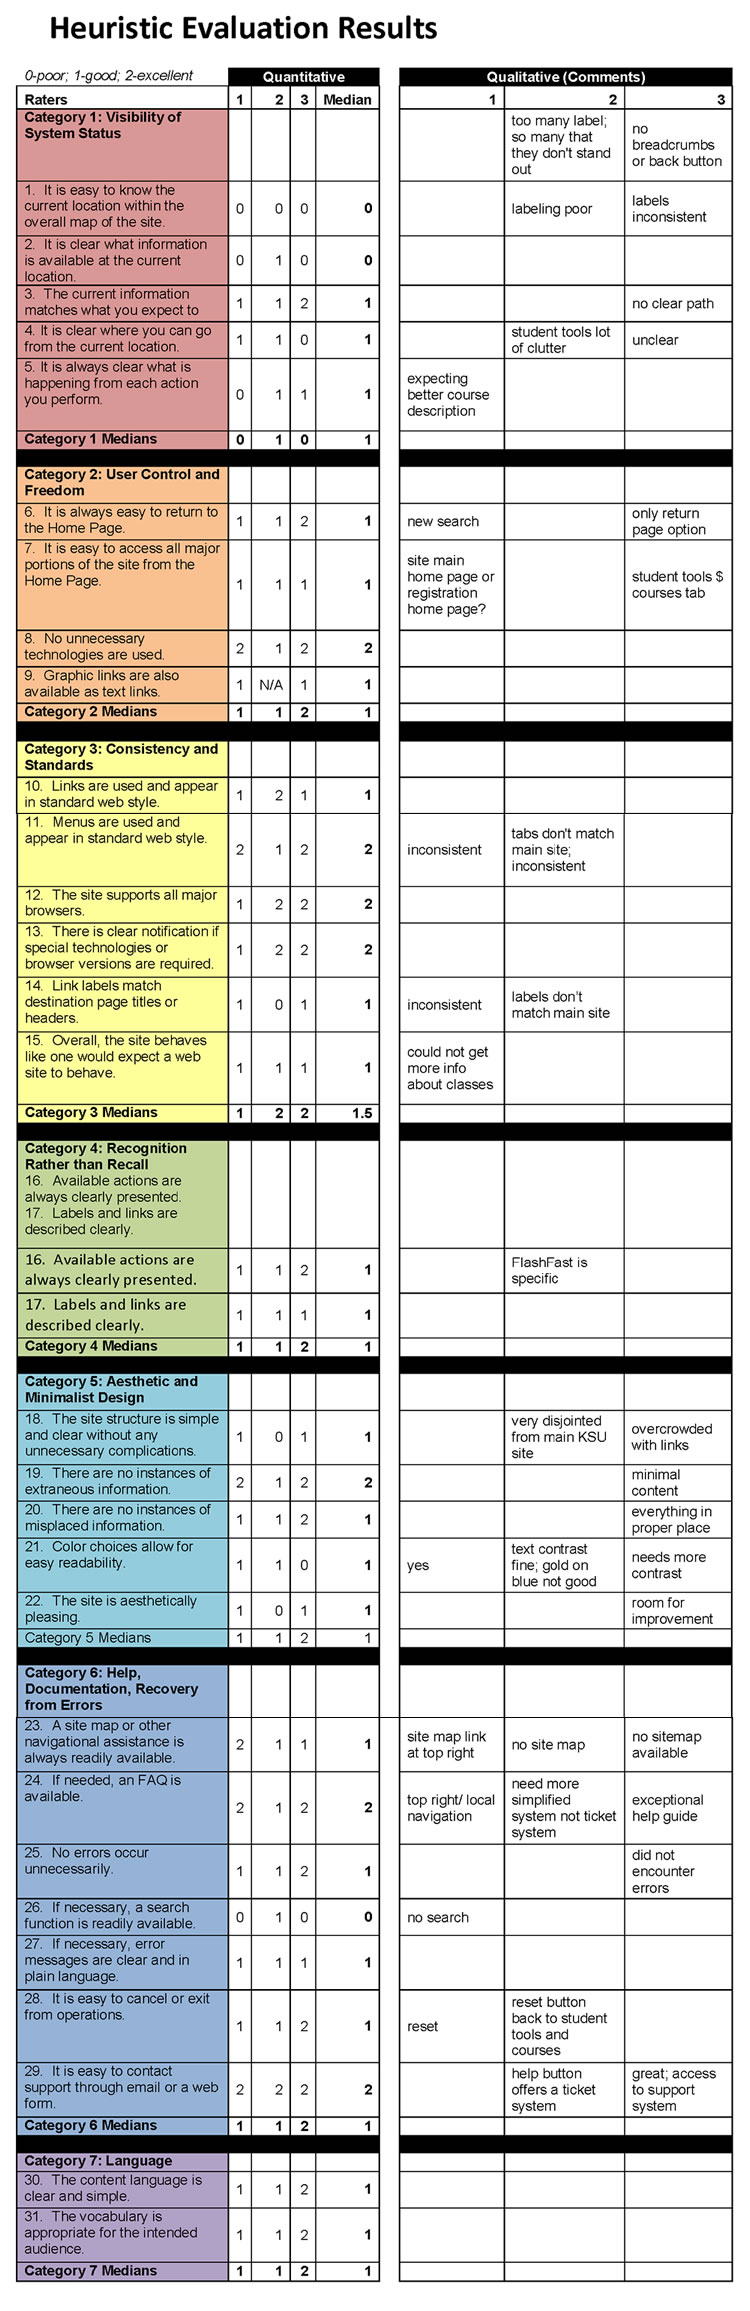 Heuristic Evaluation of KSU Registration System